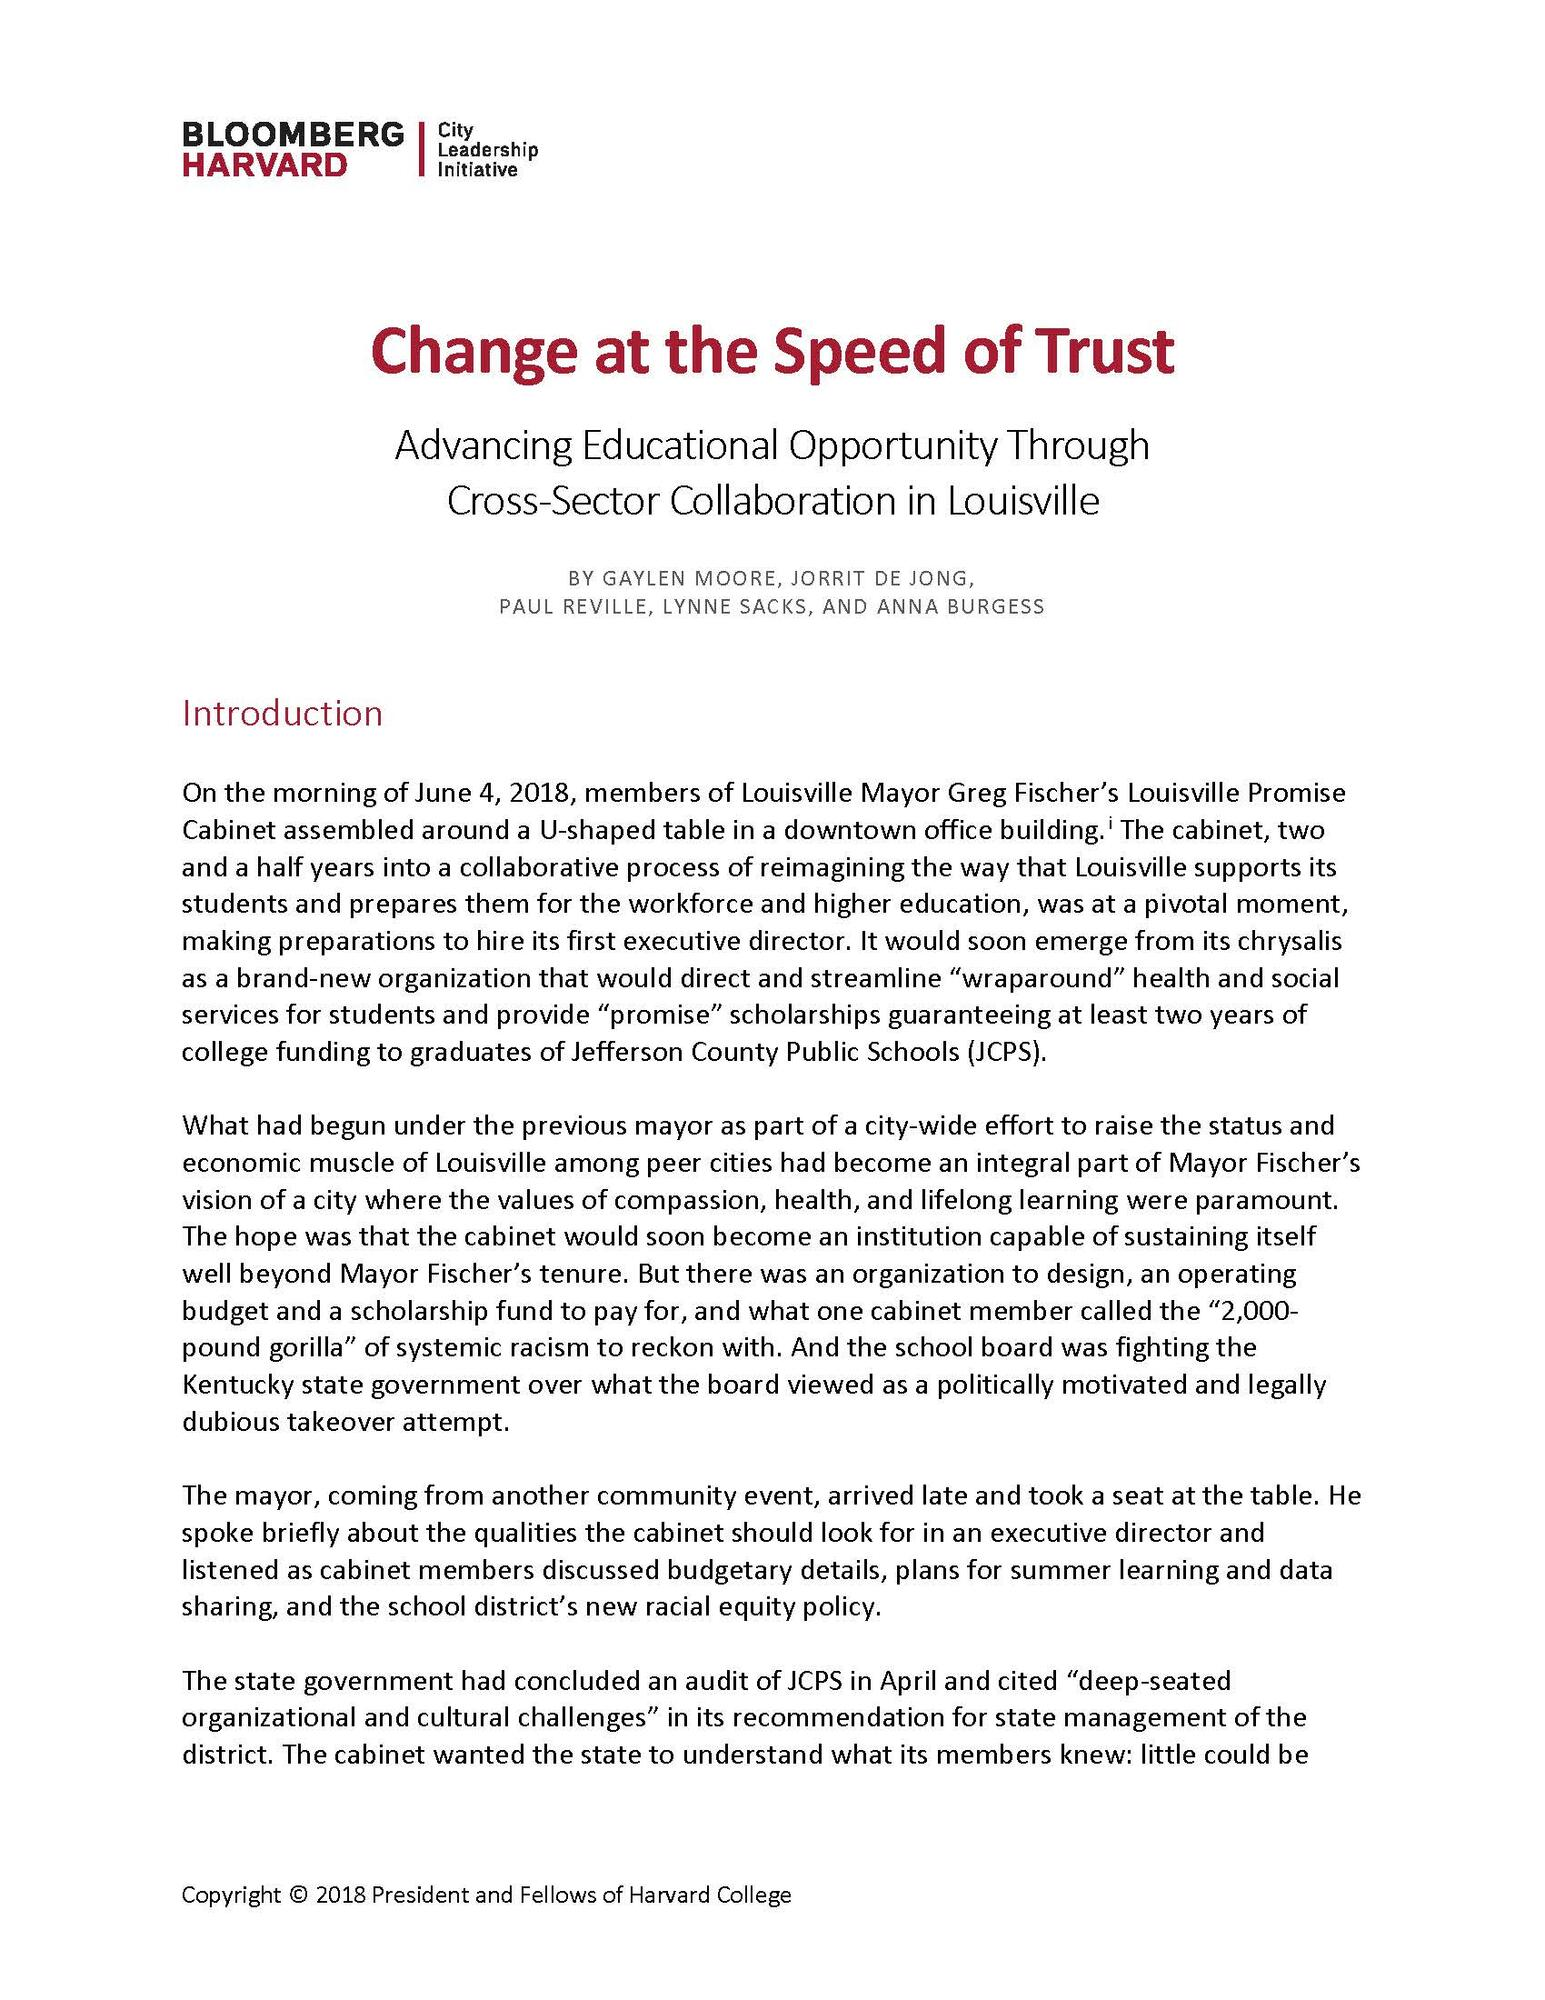 Change at the speed of trust thumbnail